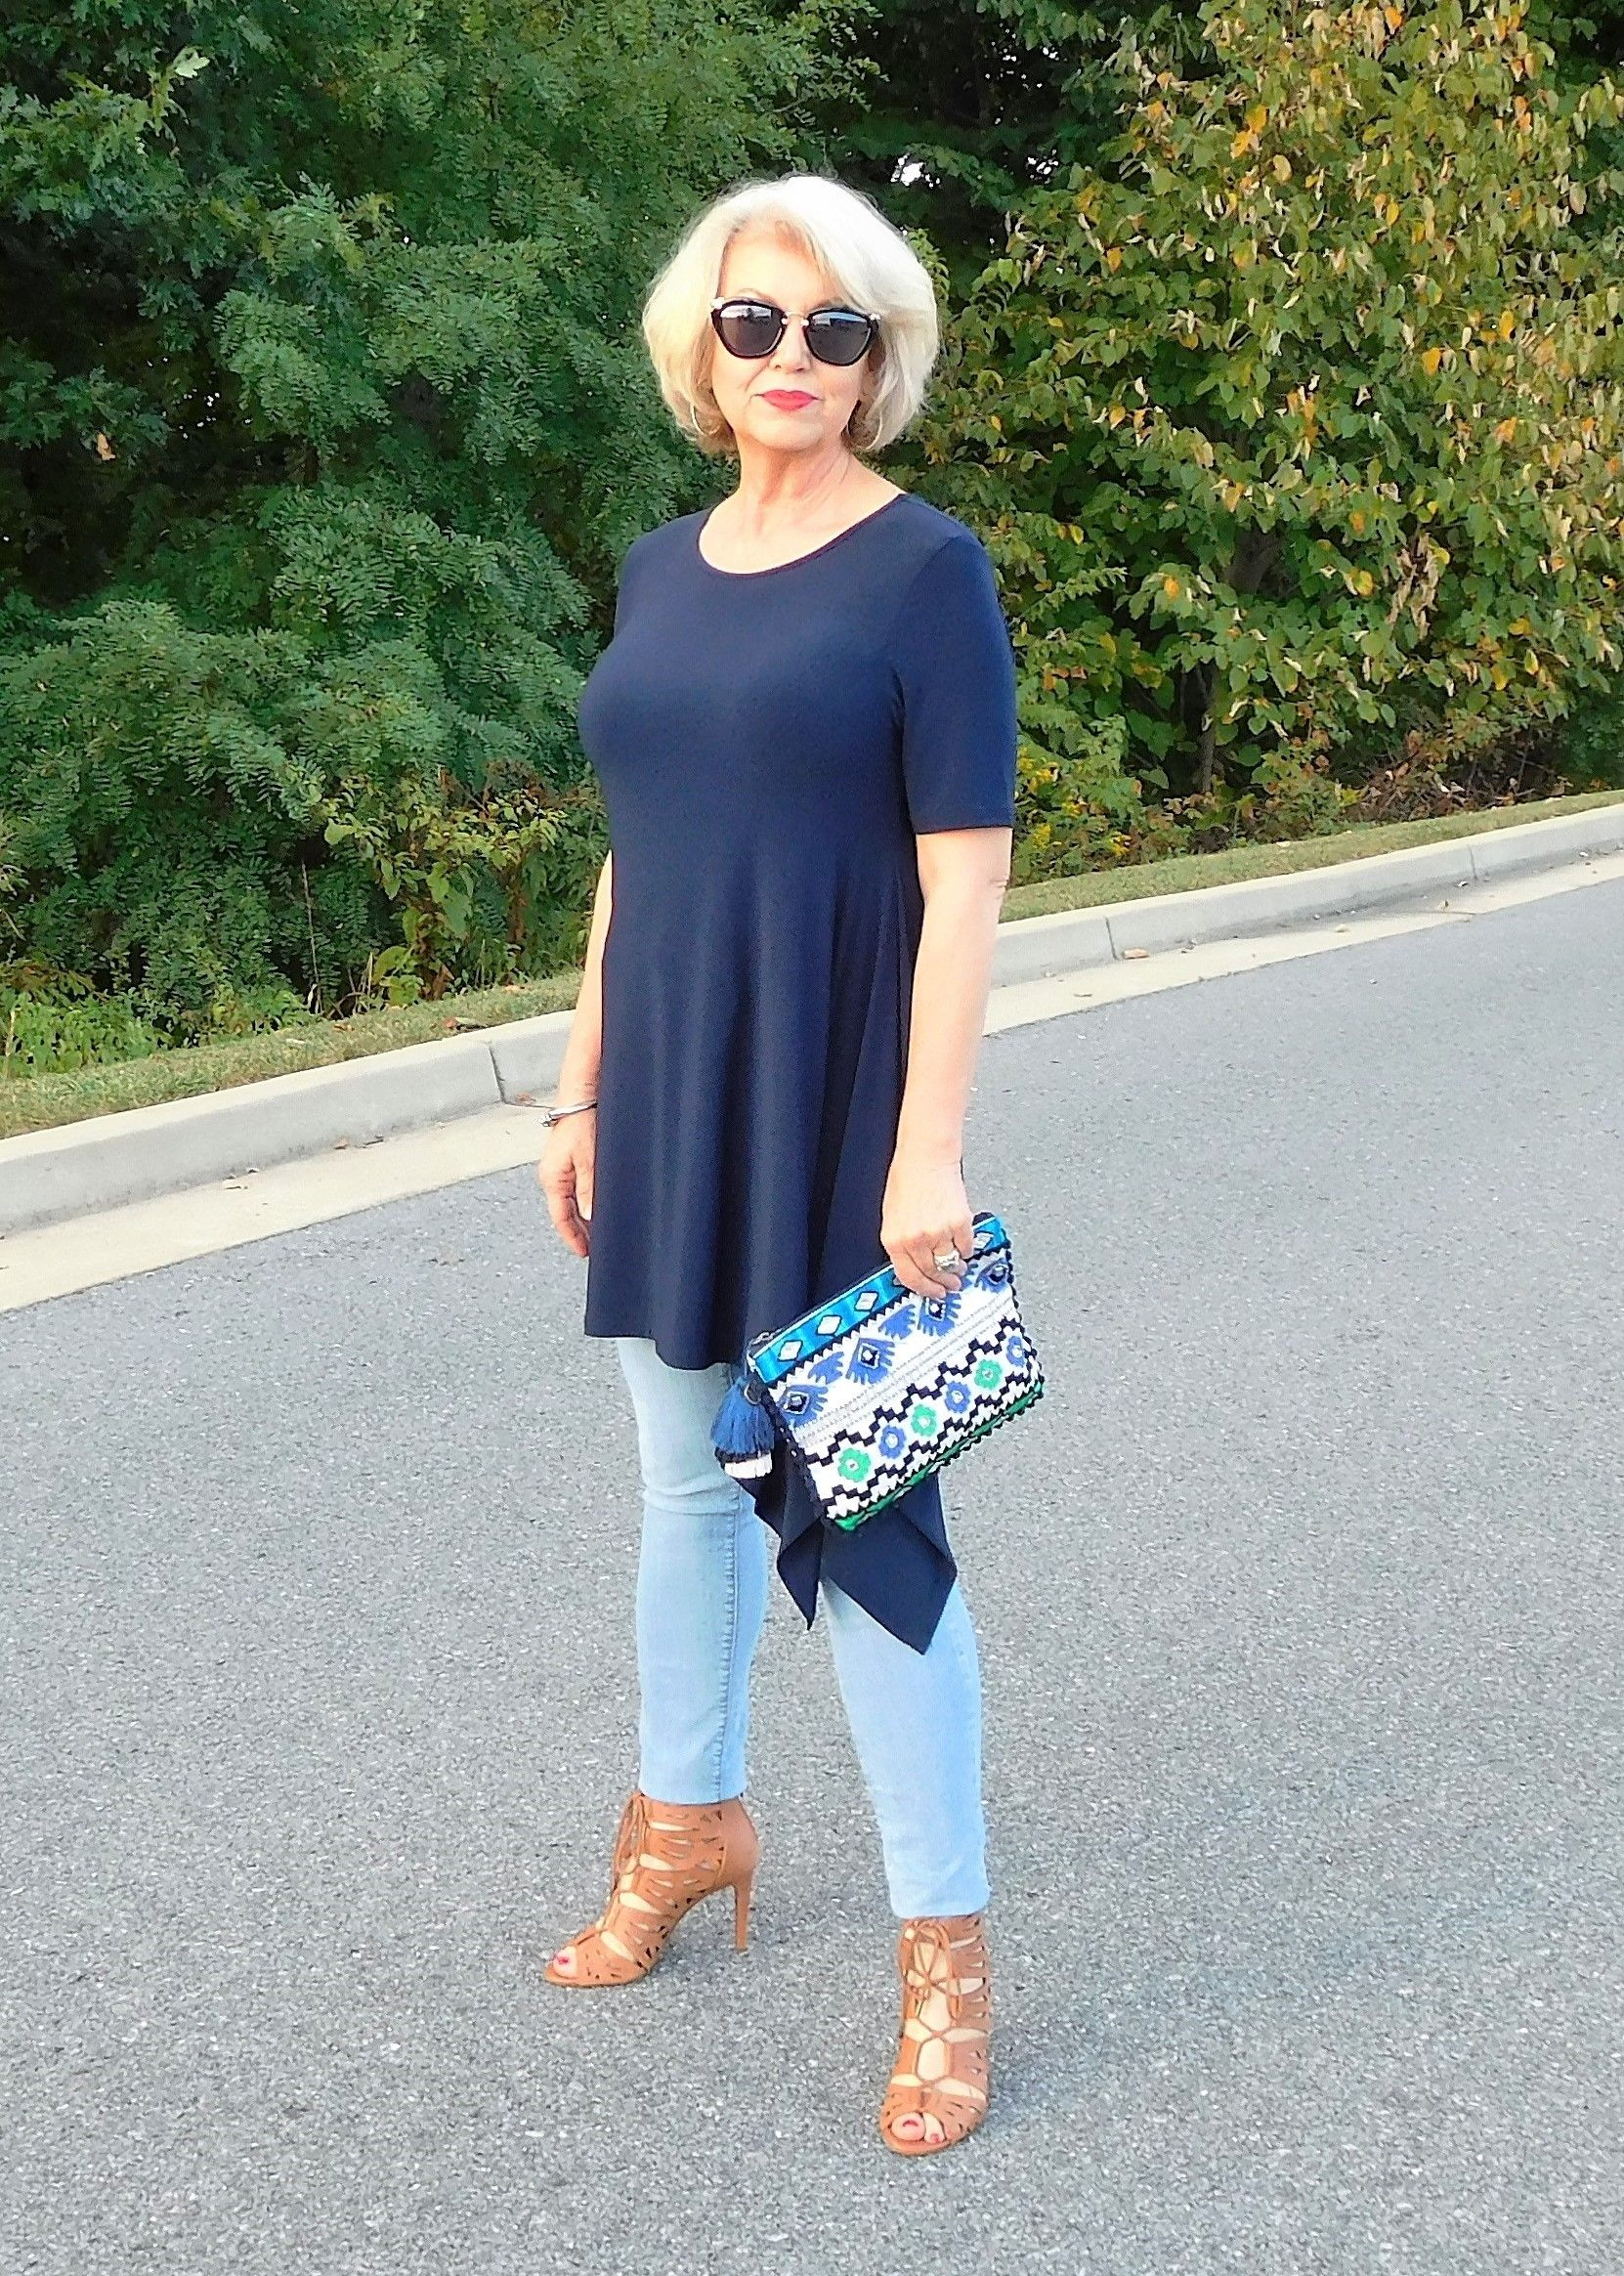 wearing jeggings and an attitude! | fifty, not frumpy style